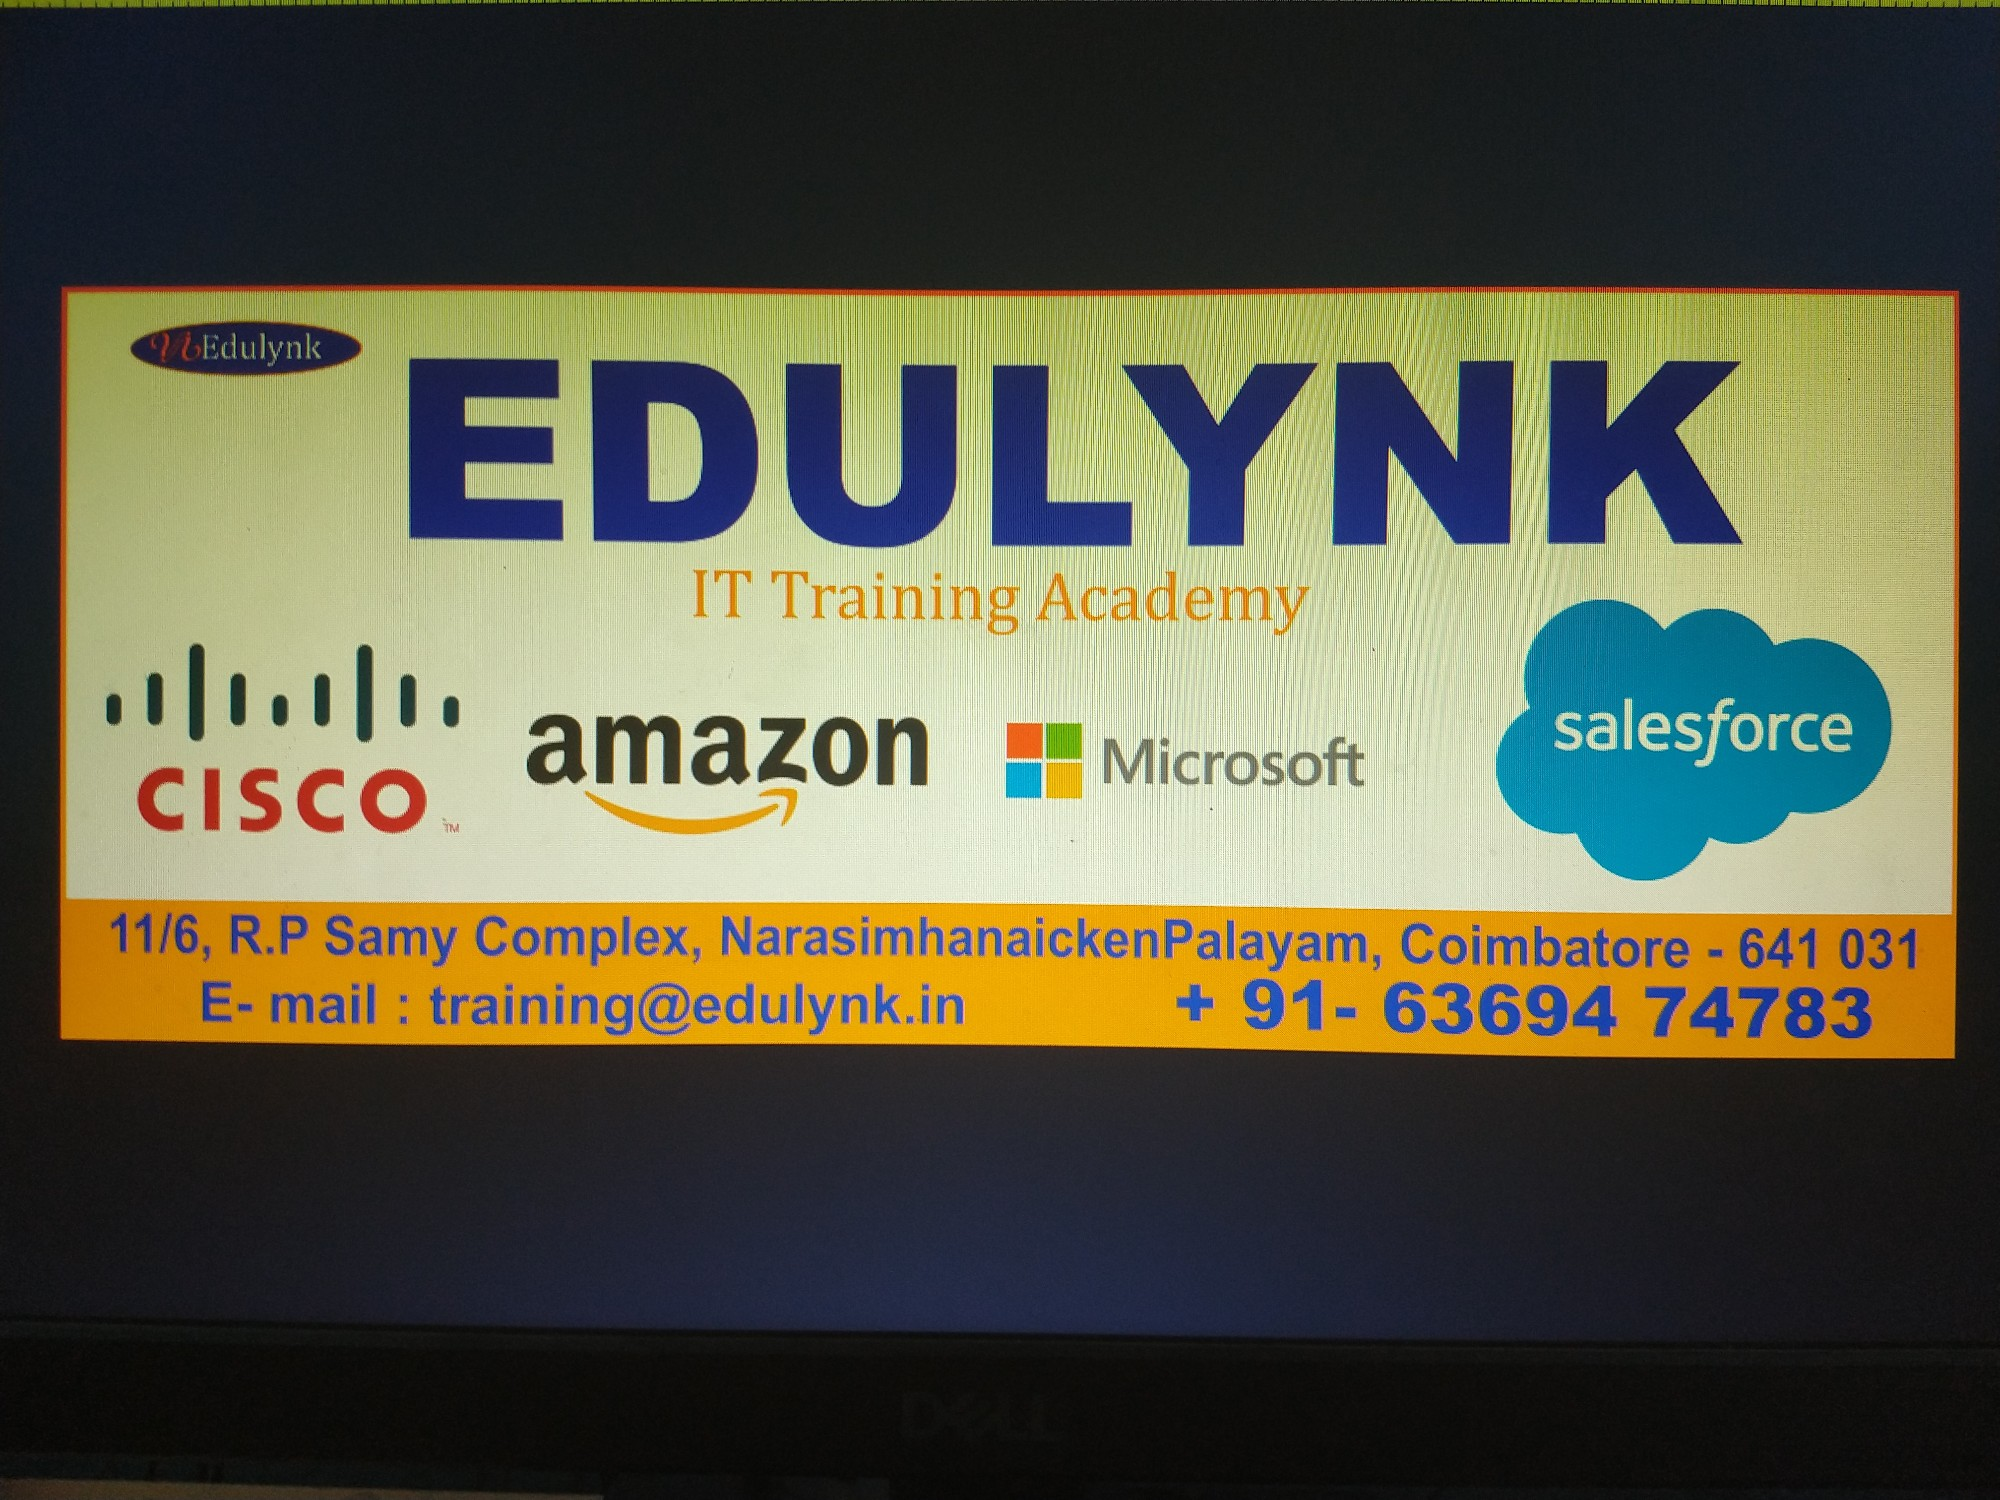 IT Hardware Networking Courses in Coimbatore, Certification